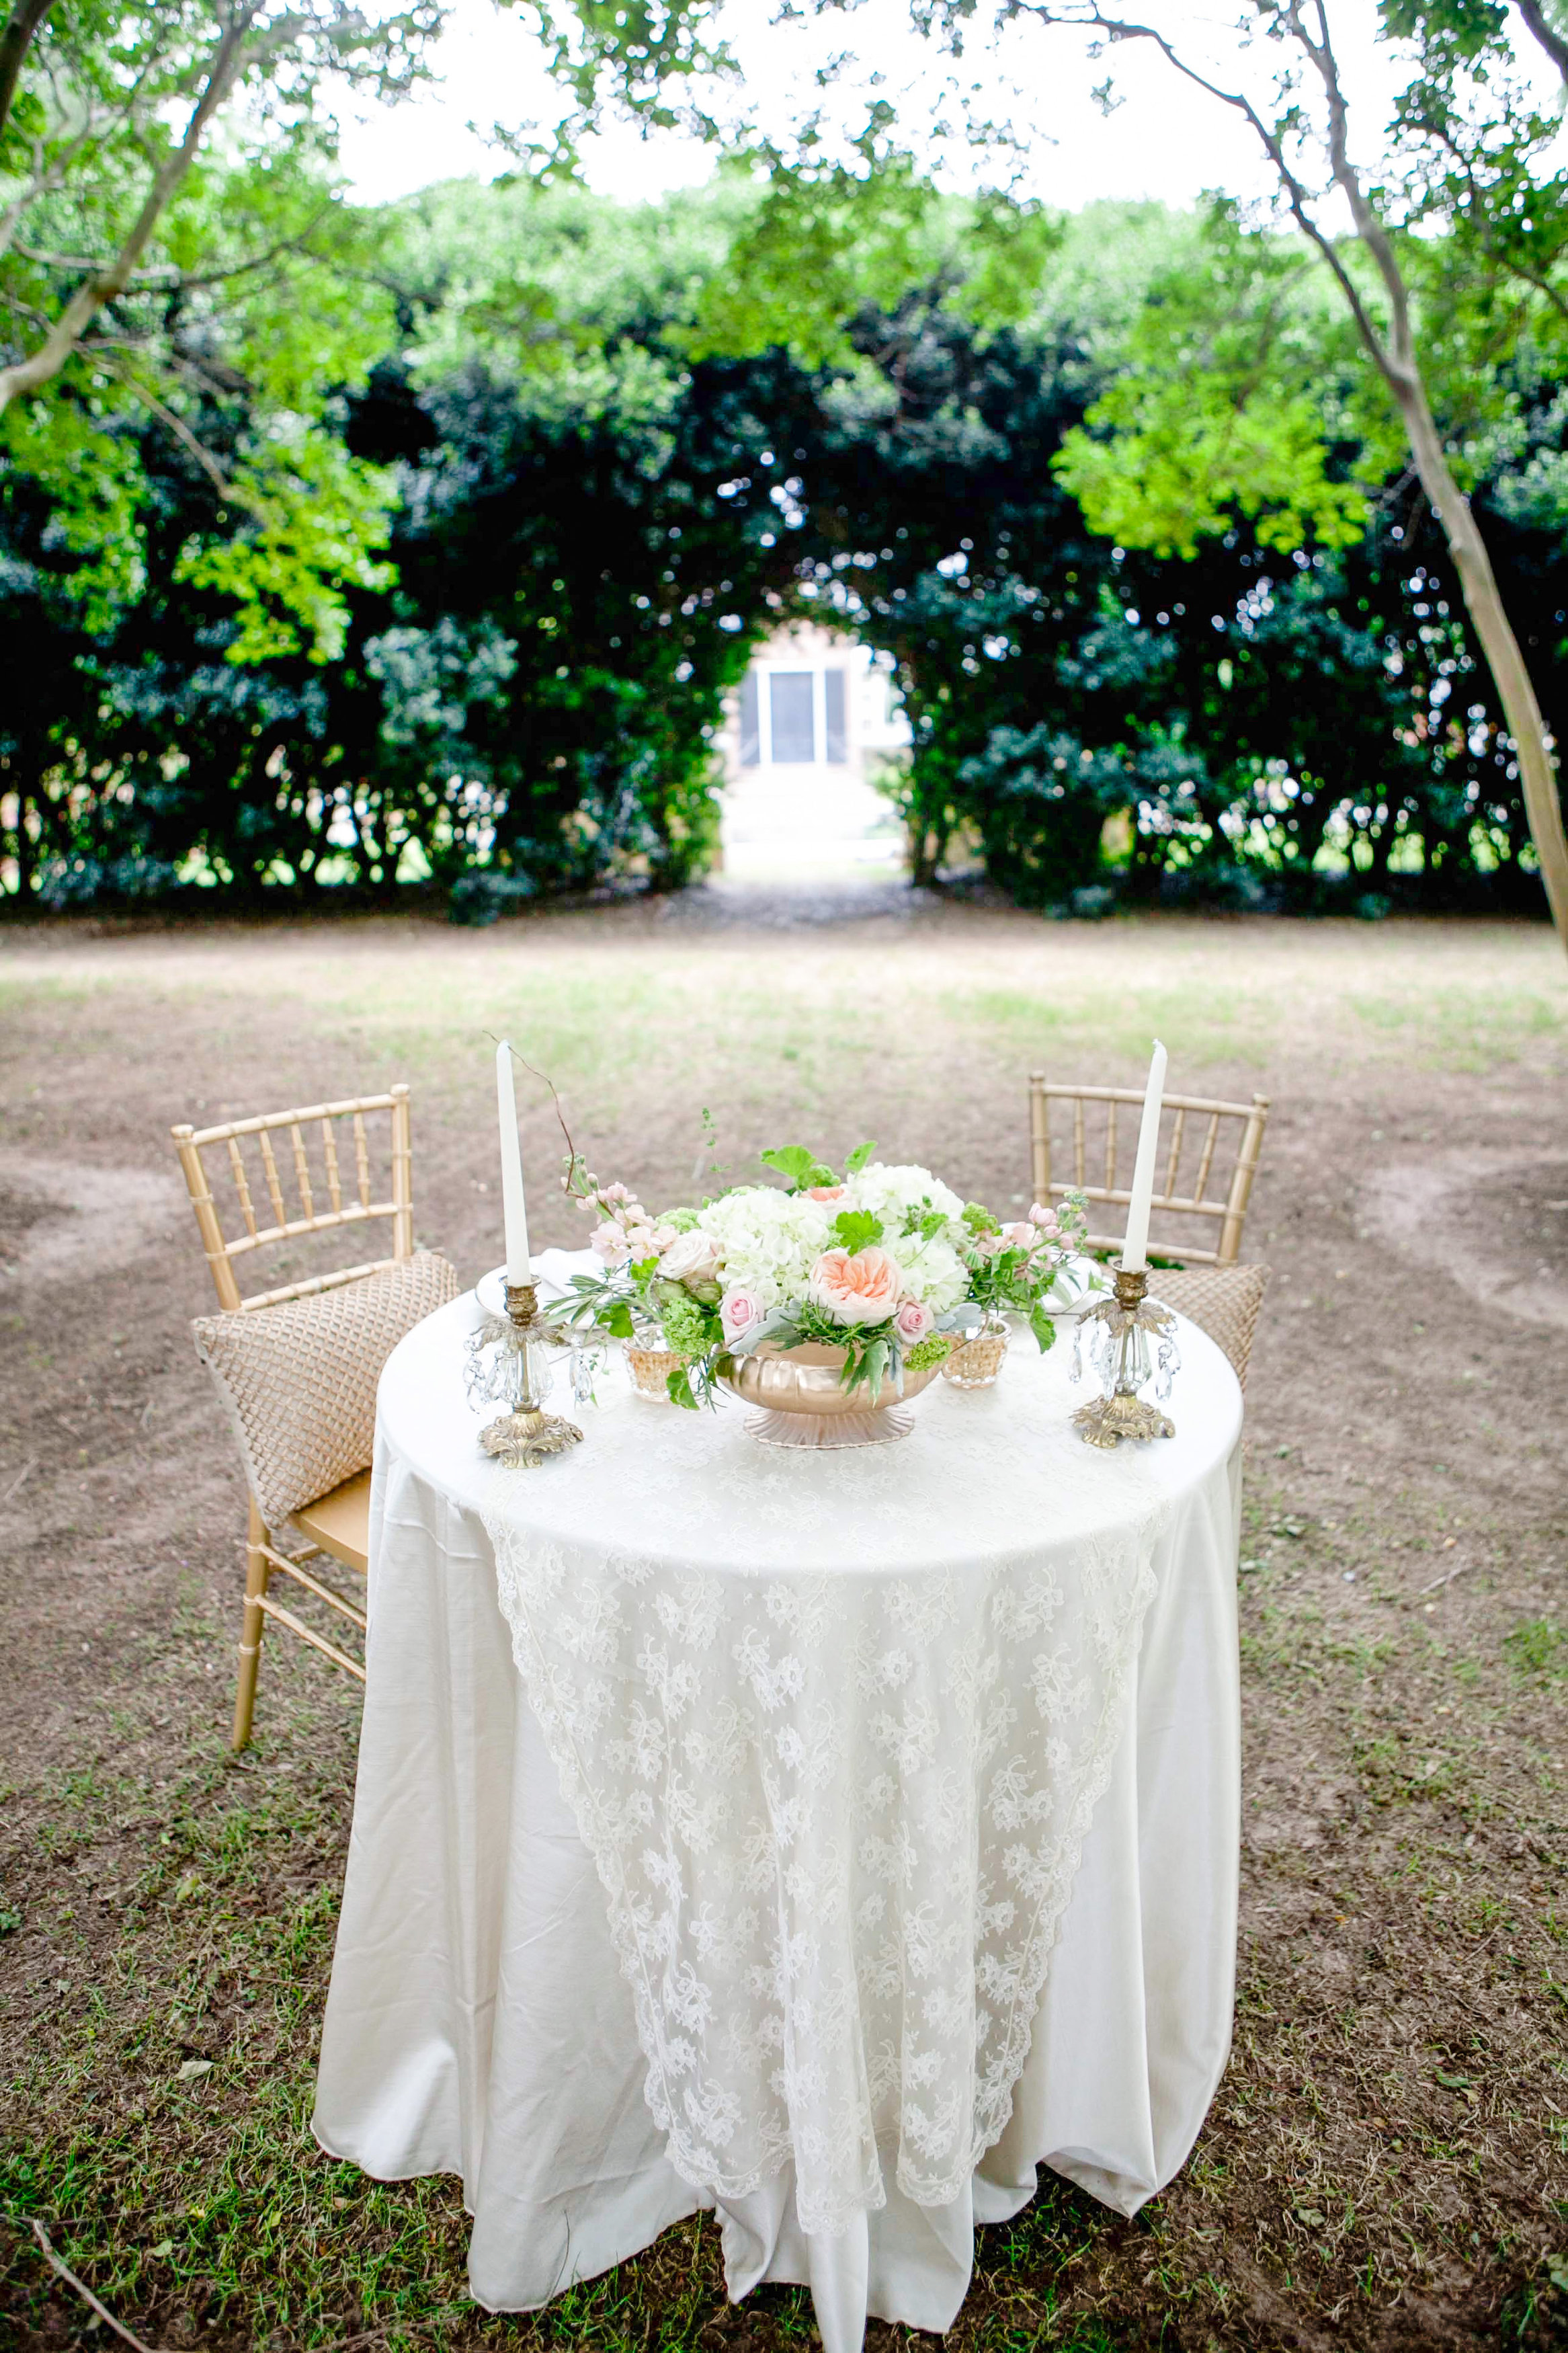 We created a secret dinner for two for them after the ceremony.